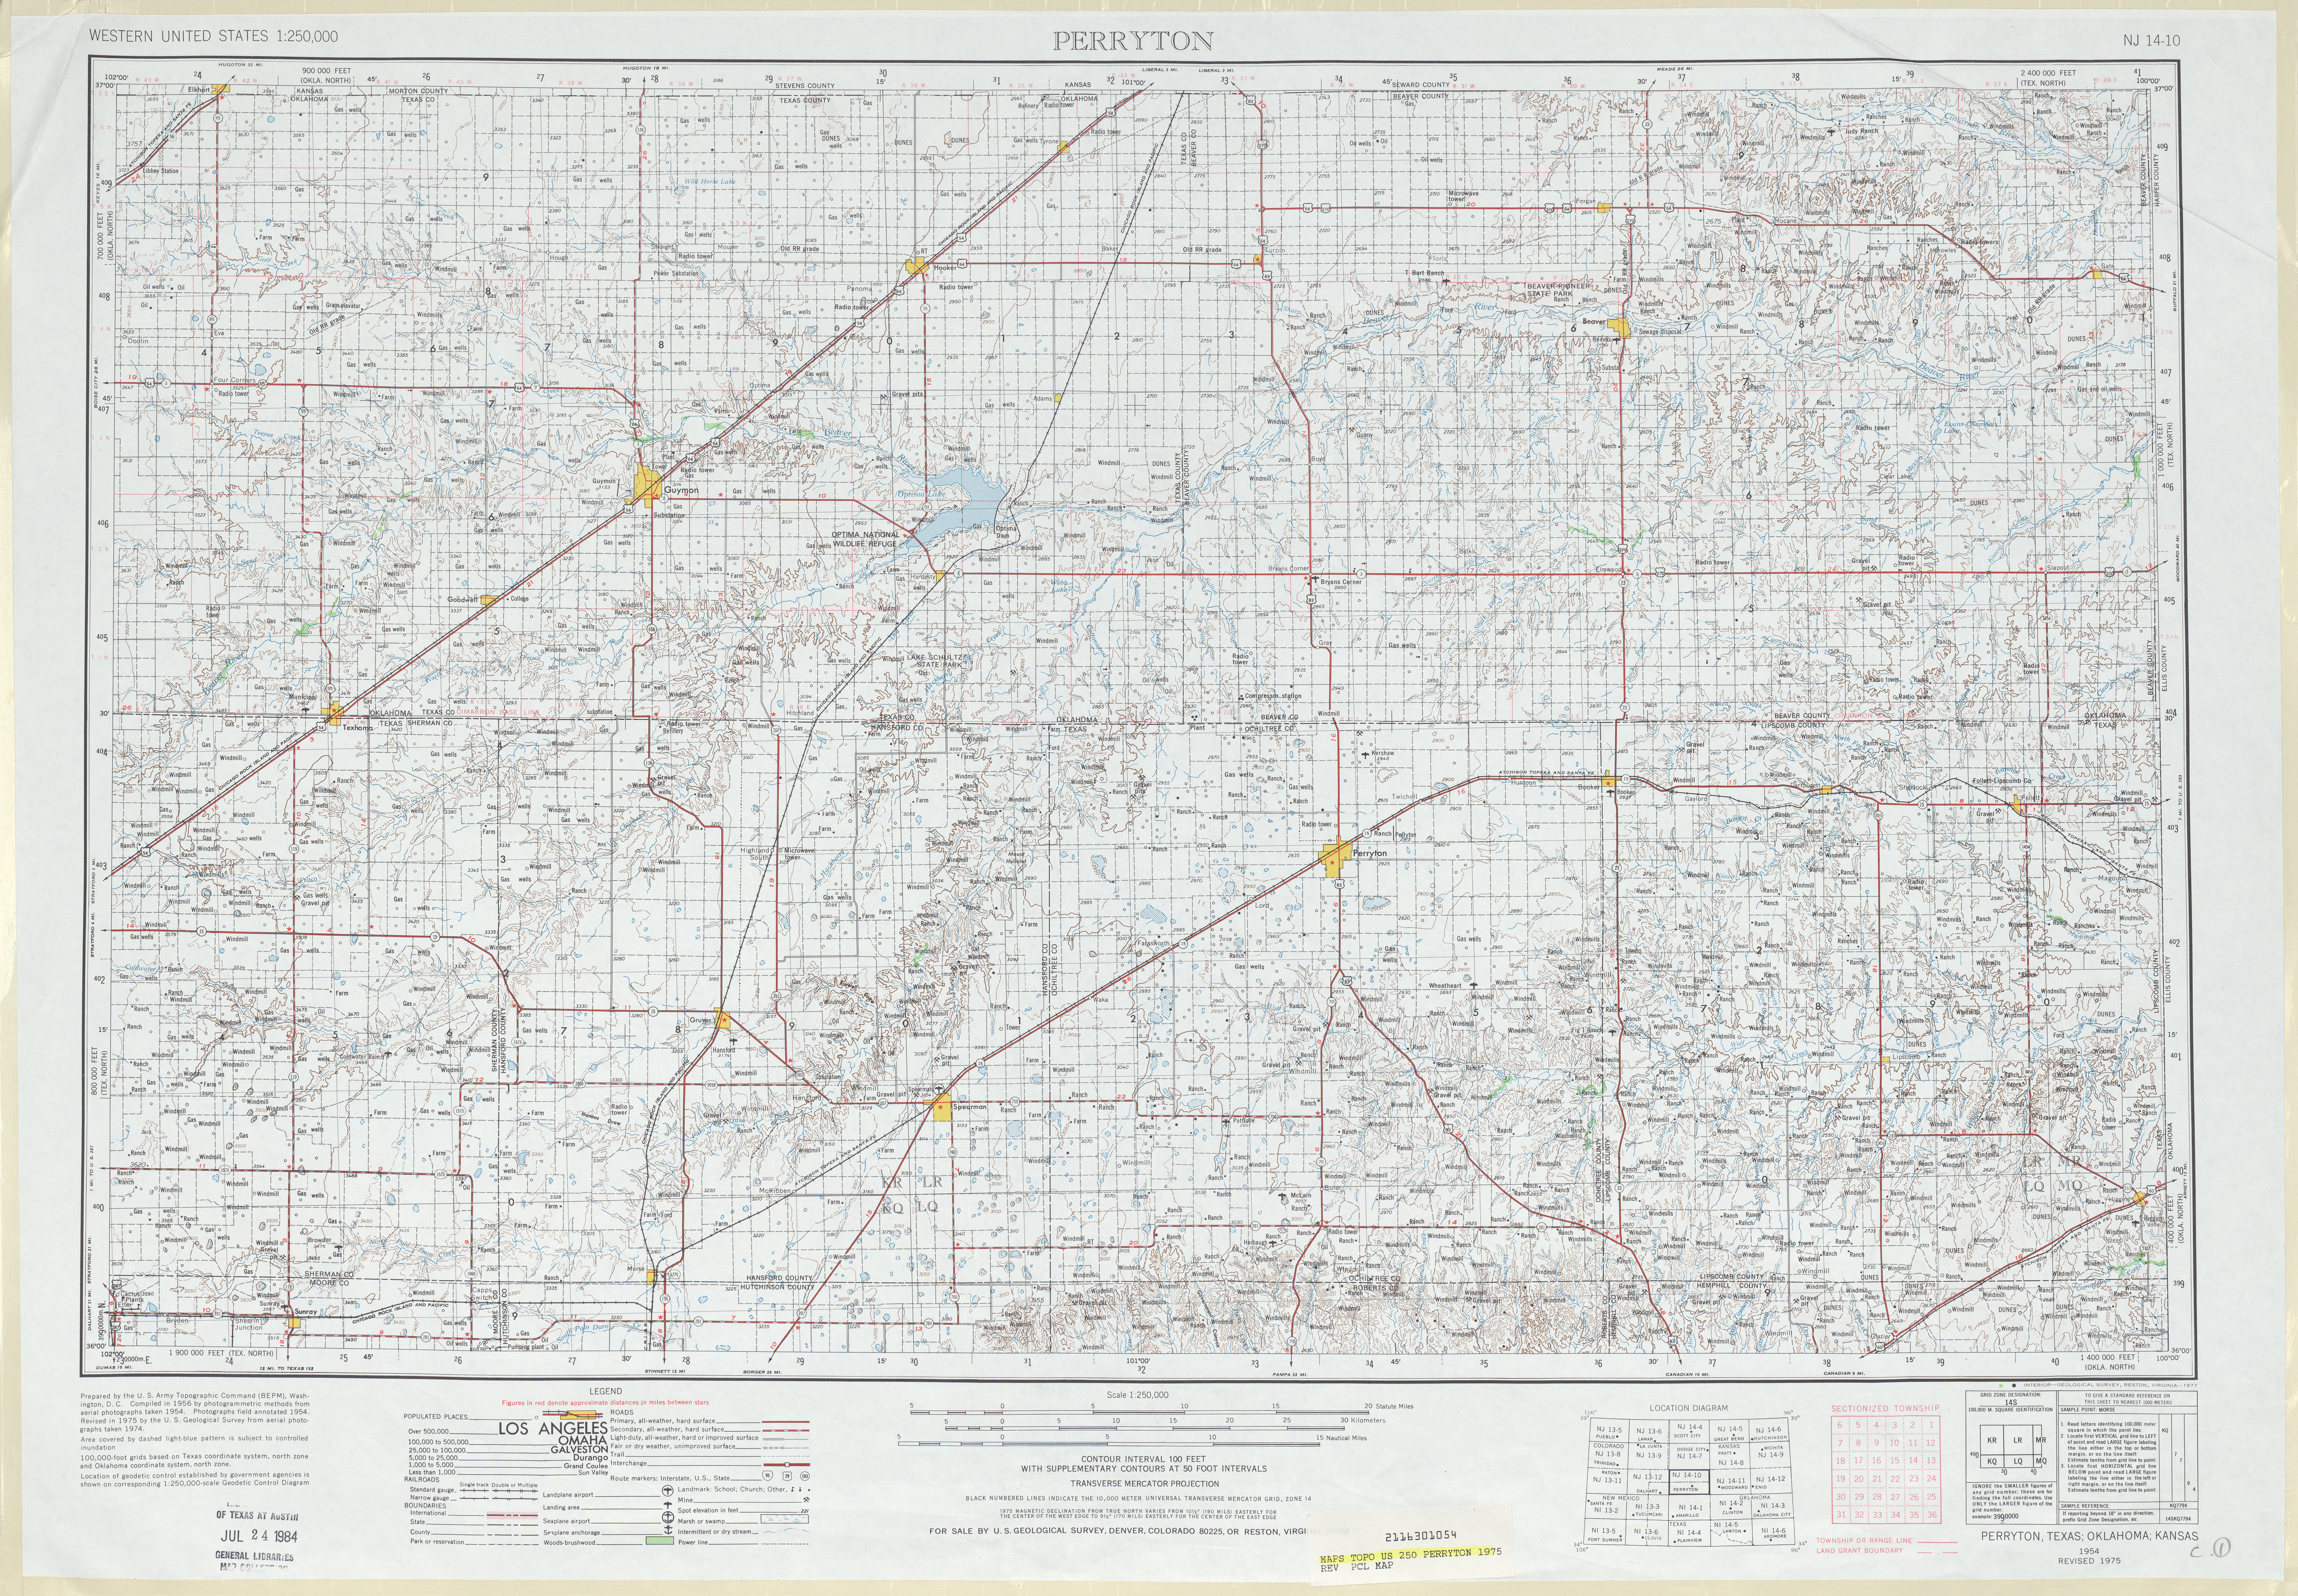 Perryton Topographic Map Sheet, United States 1975